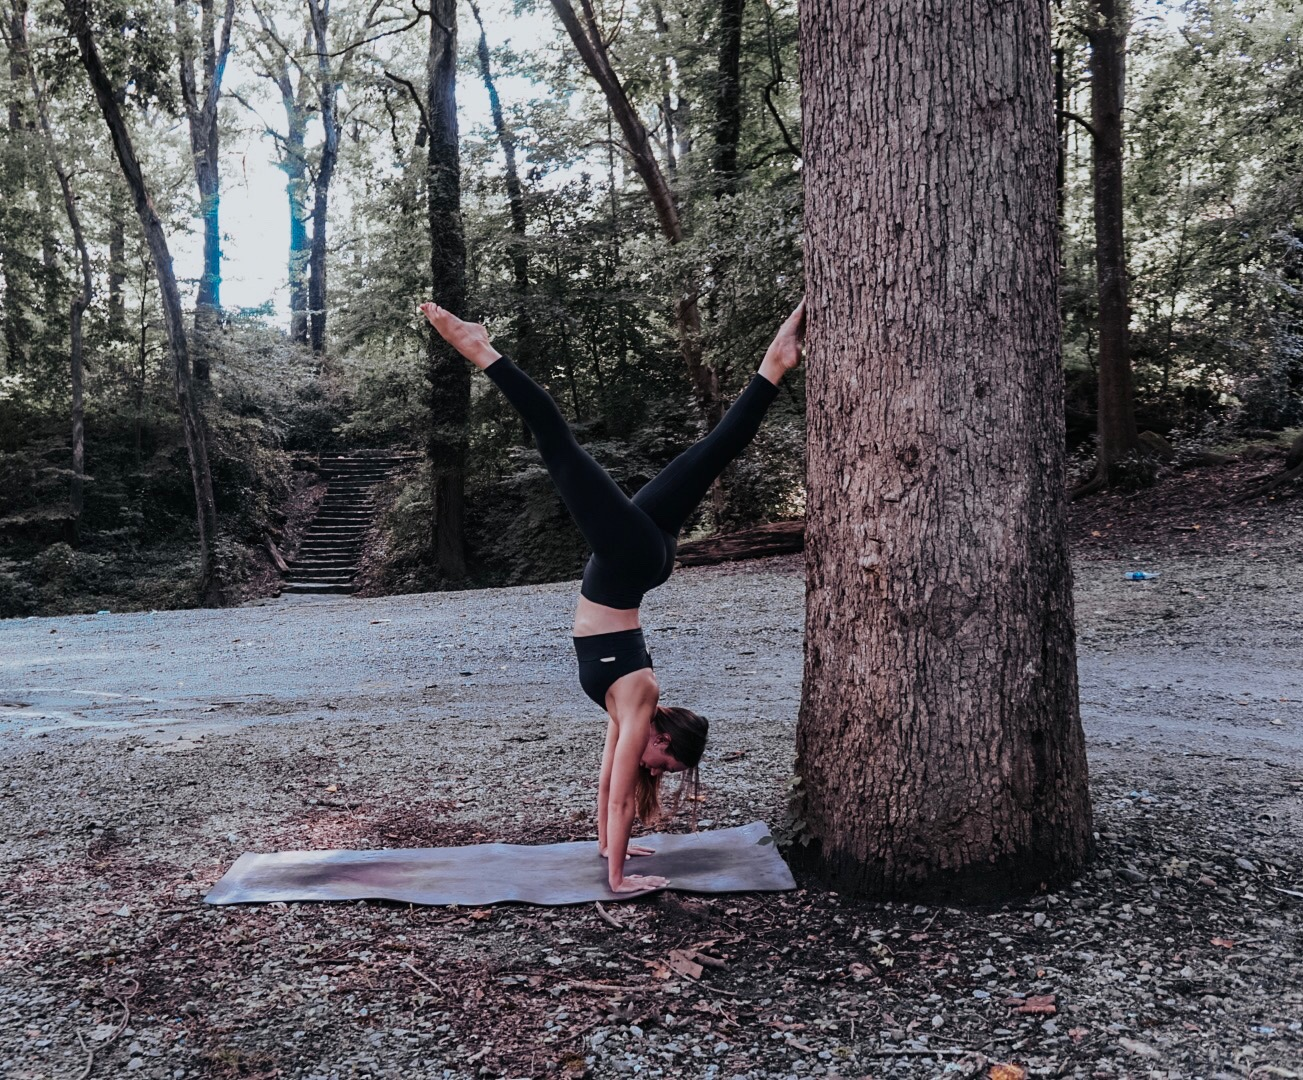 Kimberly's Yoga Teaching Schedule - Meet me on the mat. I promise it's fun.All classes are held at one of Highland Yoga's locations in Atlanta, Georgia.Tuesday2:30 PM | 7:30 PMHighland Yoga, BuckheadThursday12:00 PM | Highland Yoga, Grant Park 2:30 PM | Highland Yoga, Buckhead 7:30 PM | Highland Yoga, Virginia HighlandFriday4:45 PM | 6:15 PMHighland Yoga, BuckheadSunday10:30 AM | Highland Yoga, Buckhead